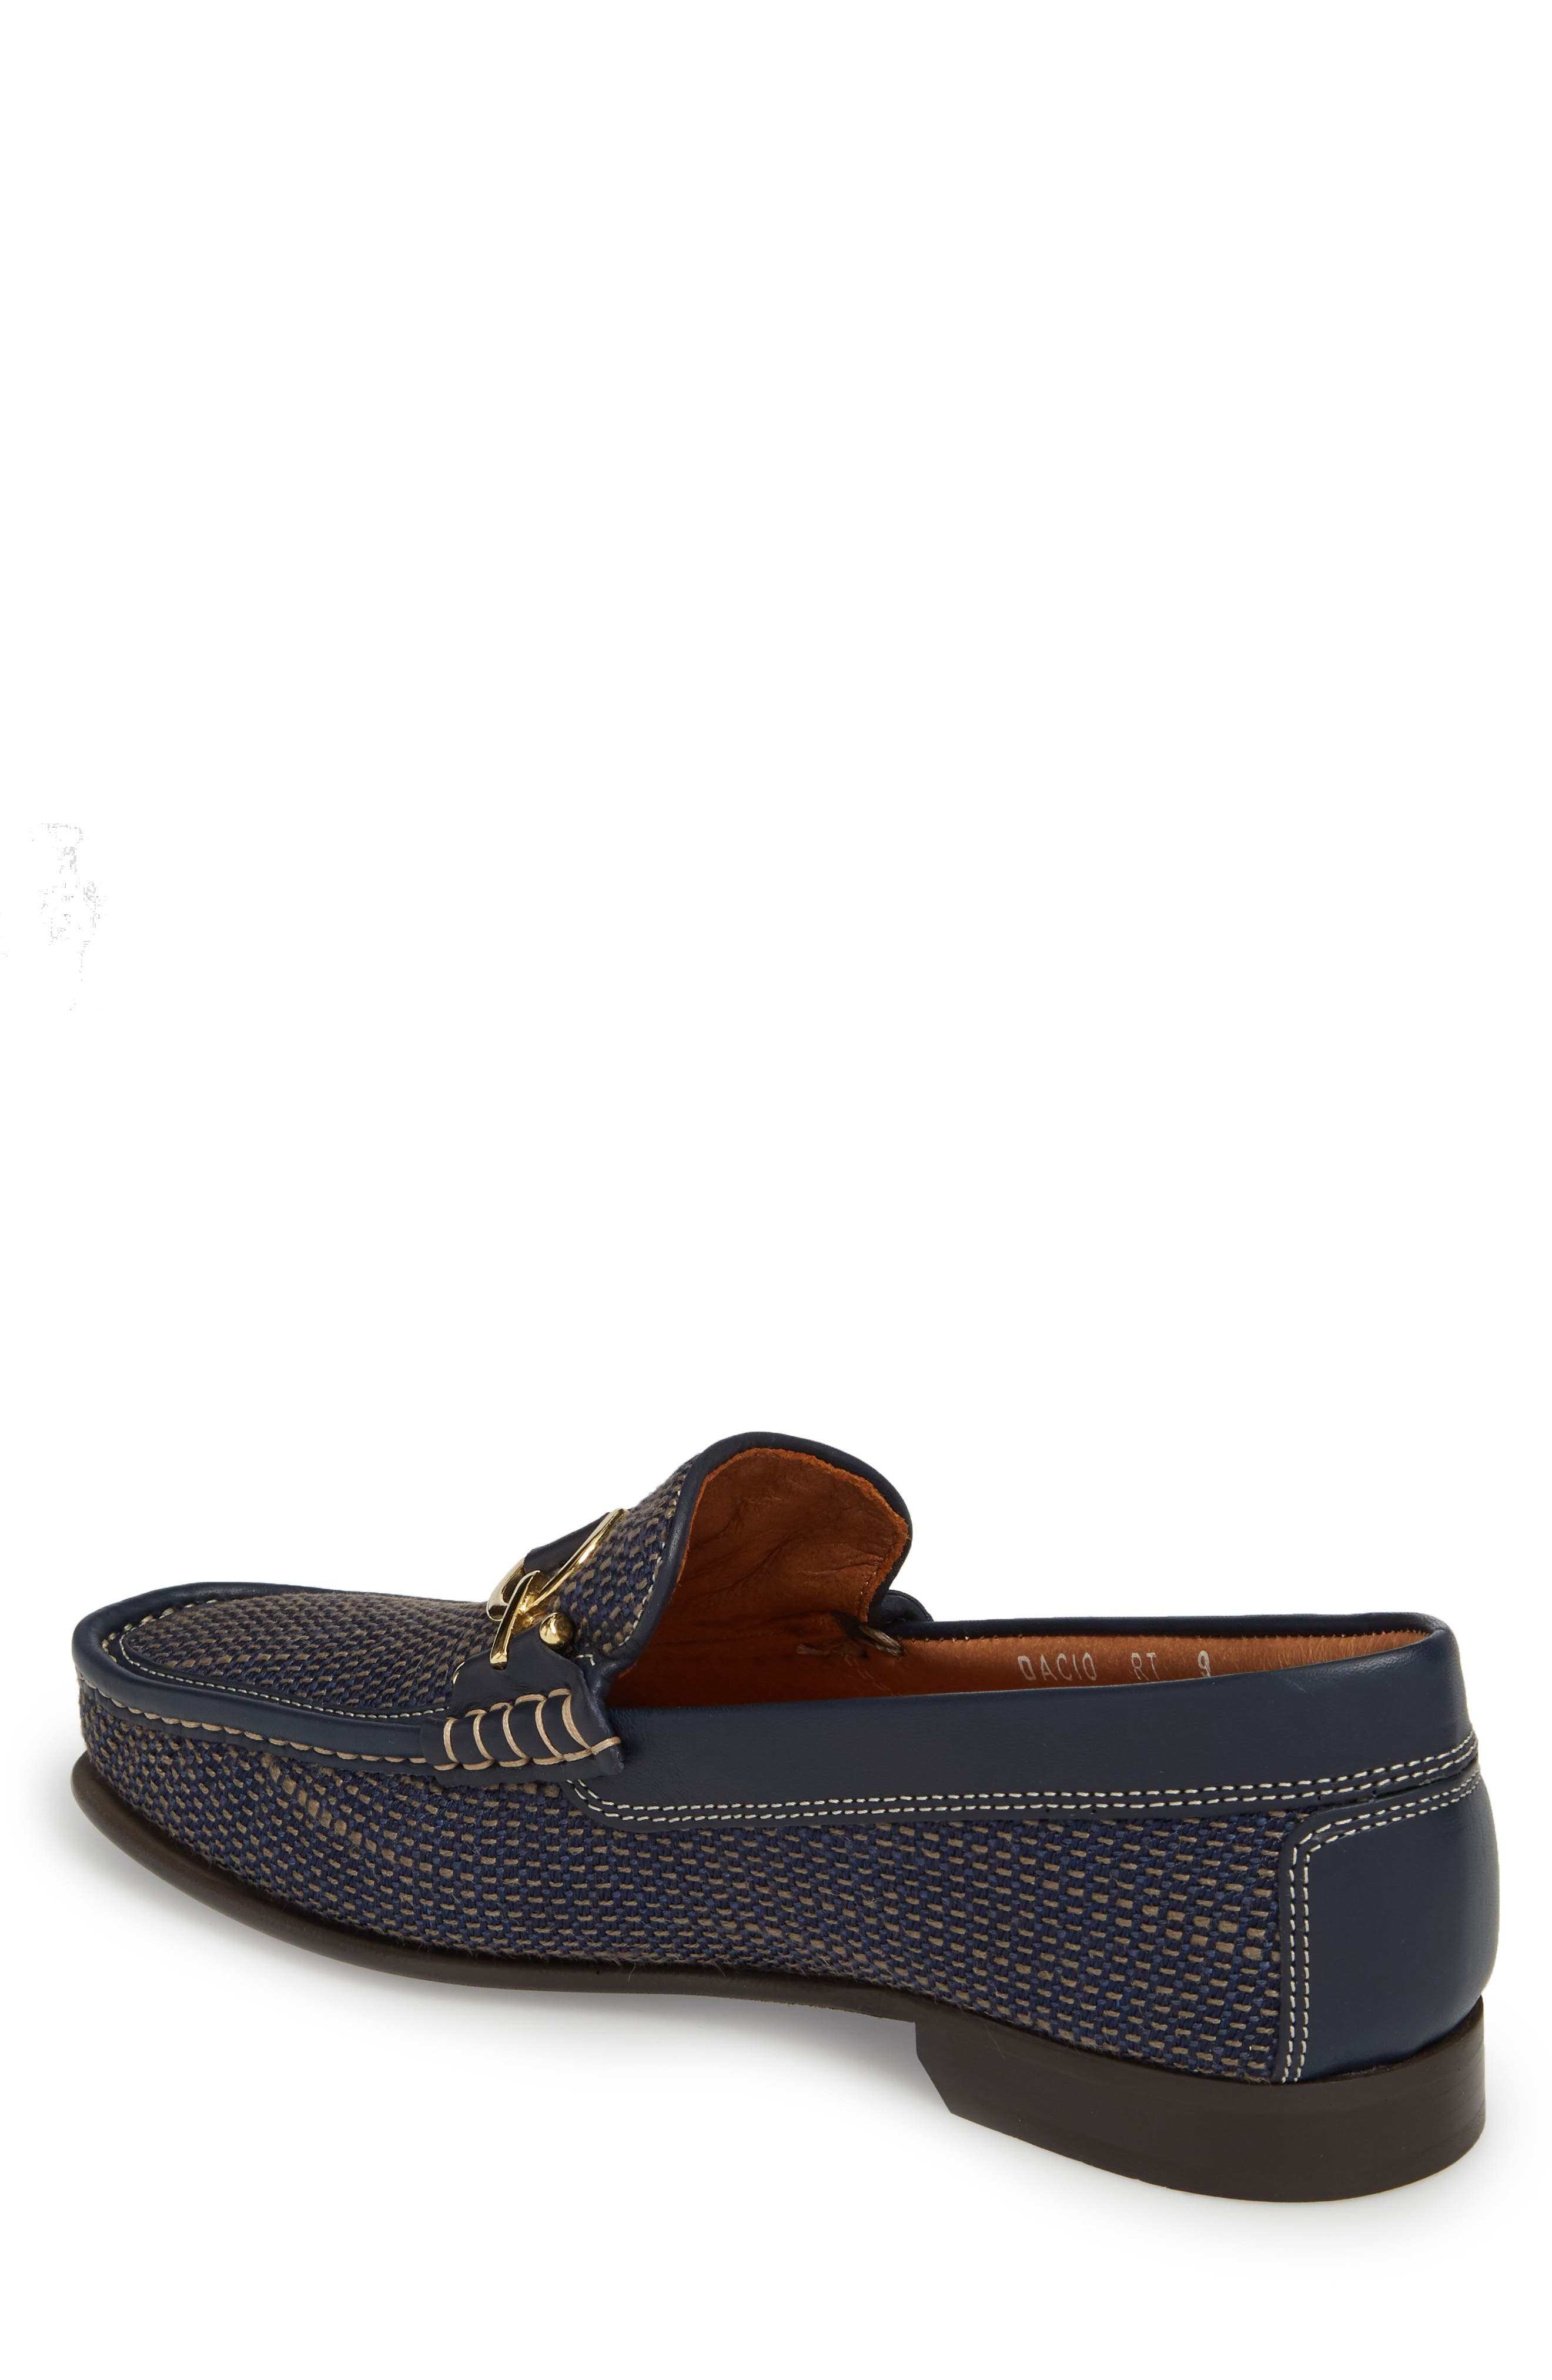 Dacio Woven Bit Loafer,                             Alternate thumbnail 2, color,                             Navy Leather